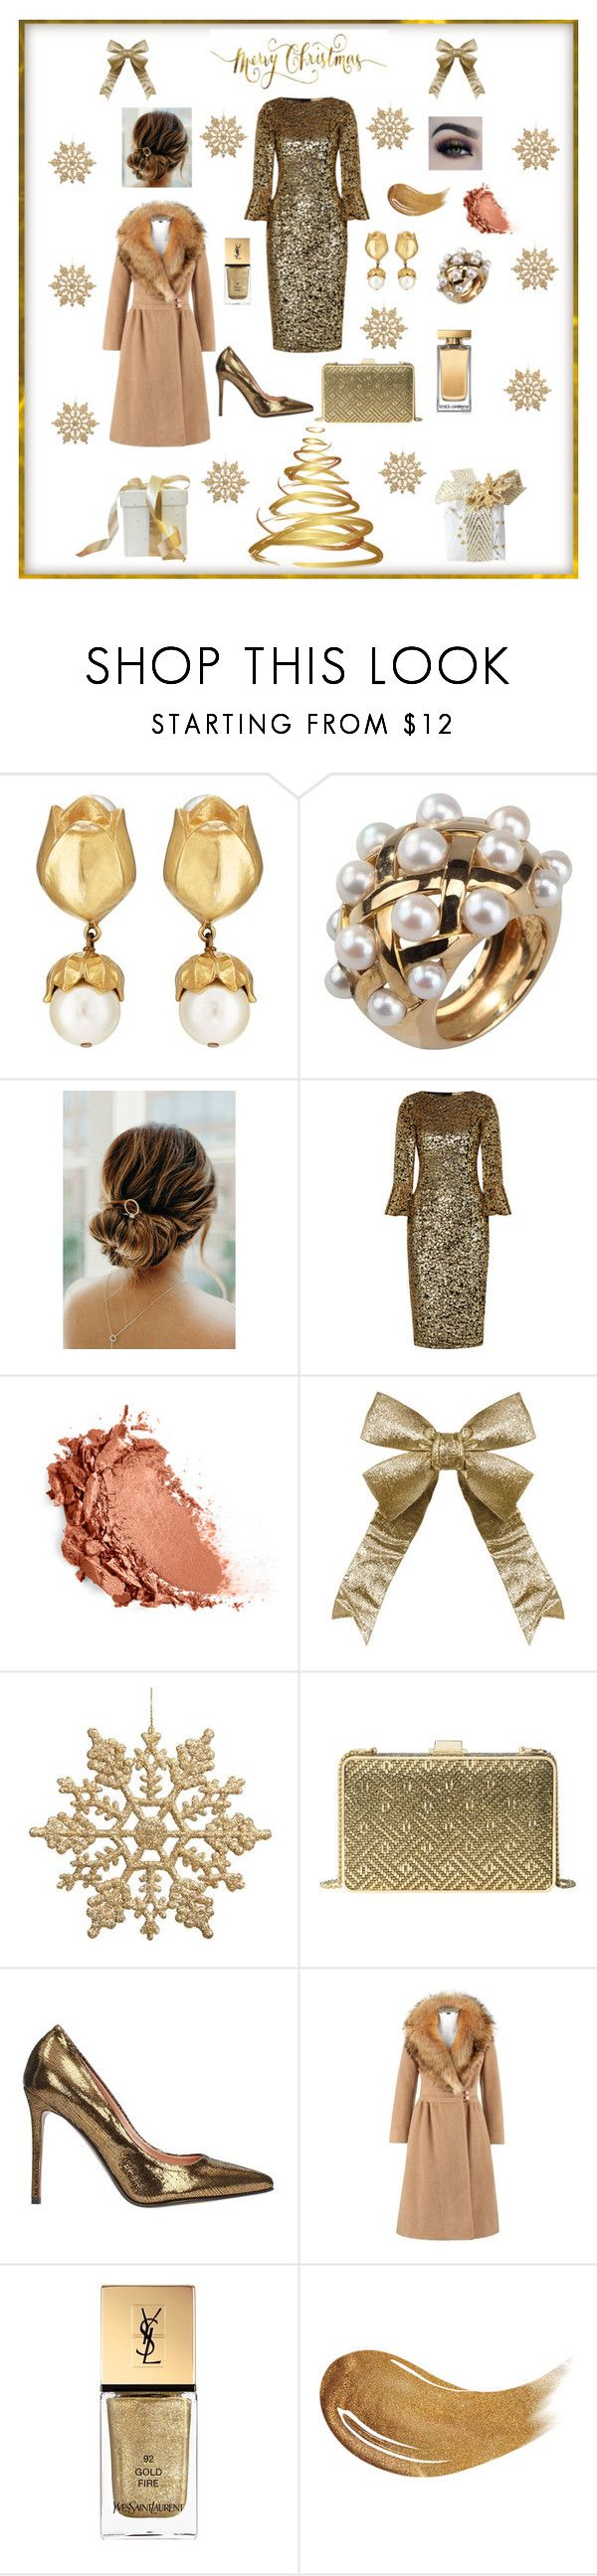 """Christmas Party Gold"" by marnie1979 ❤ liked on Polyvore featuring Chanel, Michael Kors, MICHAEL Michael Kors, L'Autre Chose, Pierre Cardin, Yves Saint Laurent, Too Faced Cosmetics, Dolce&Gabbana and BHCosmetics"